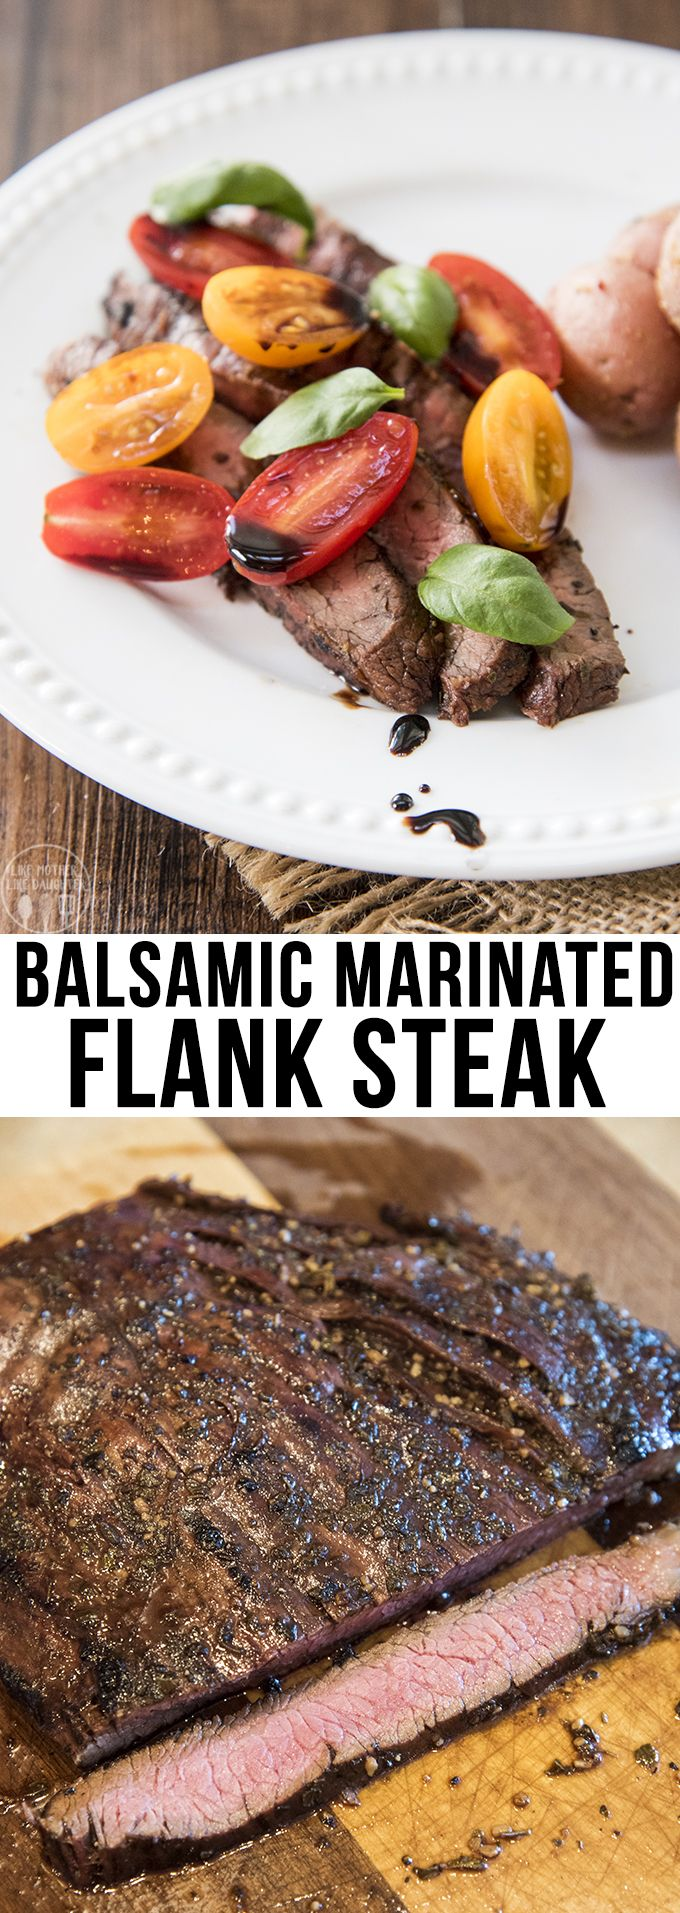 This balsamic marinated flank steak is packed full of delicious flavor, with the most tender meat cooked to perfection. Perfect served up with some veggies or potatoes. **I received a free Big Green Egg Grill in exchange for writing this post. All opinions are mine. Multiple times throughout dinner my husband said that this was...Read More »